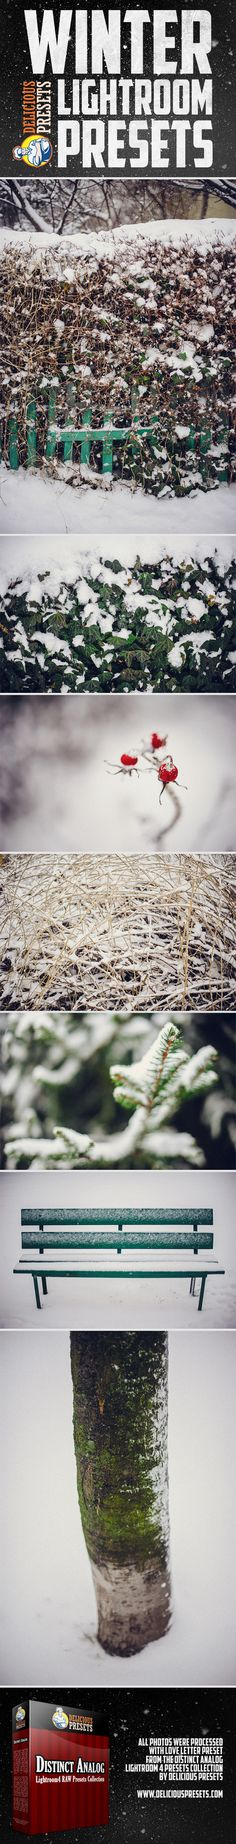 Winter Lightroom Presets - Distinct Analog Collection from Delicious Presets.    http://www.deliciouspresets.com/lightroom-4-presets/raw-presets/distinct-analog